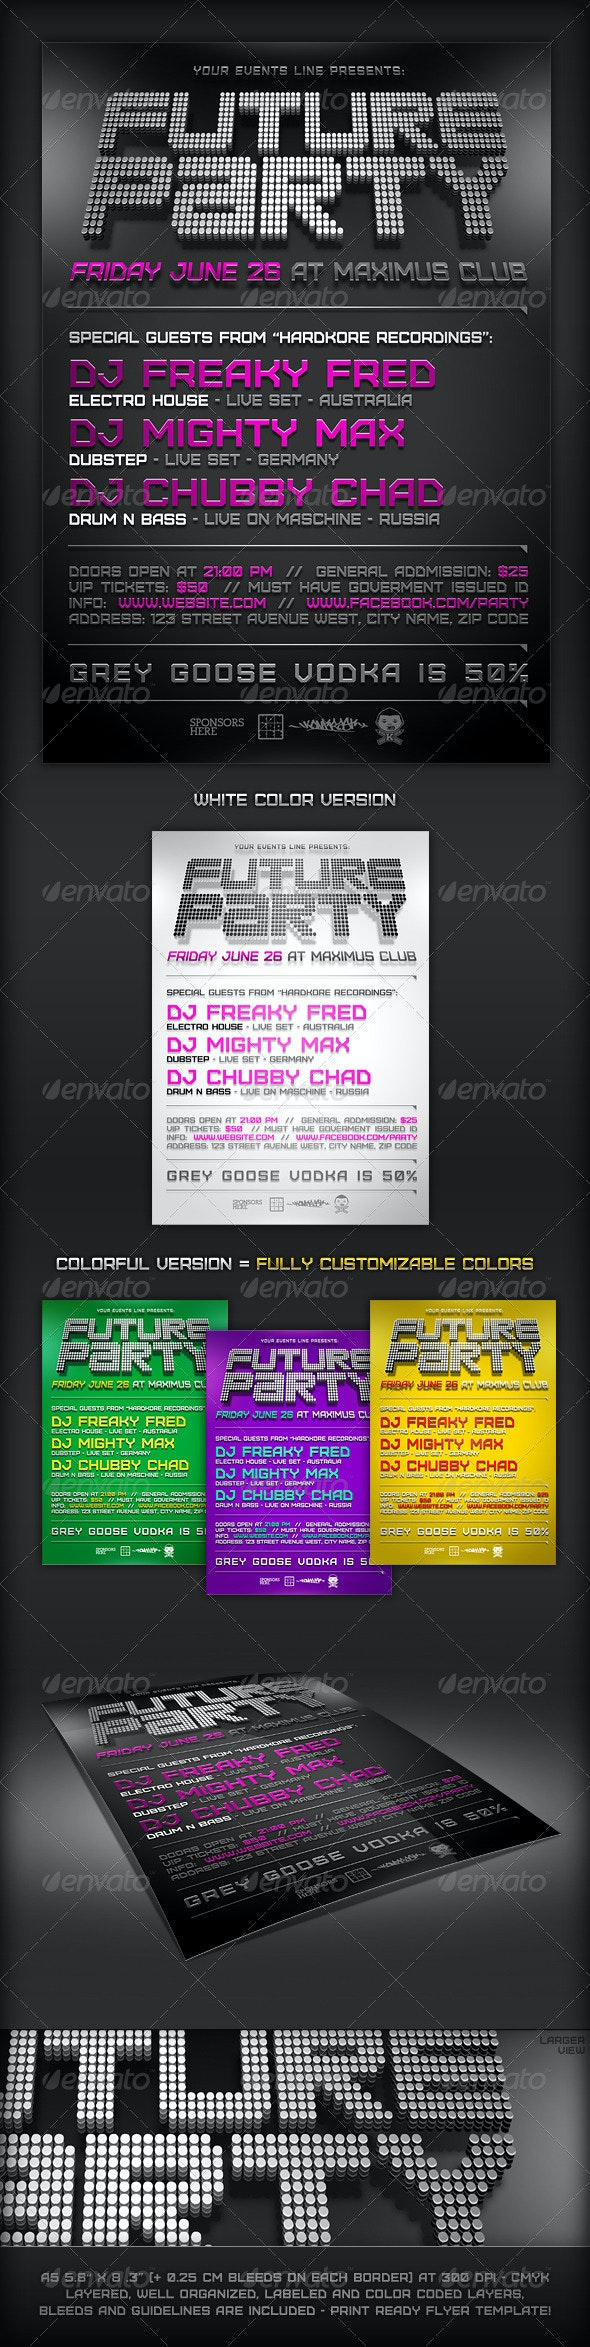 Minimal Future Flyer Template - Clubs & Parties Events